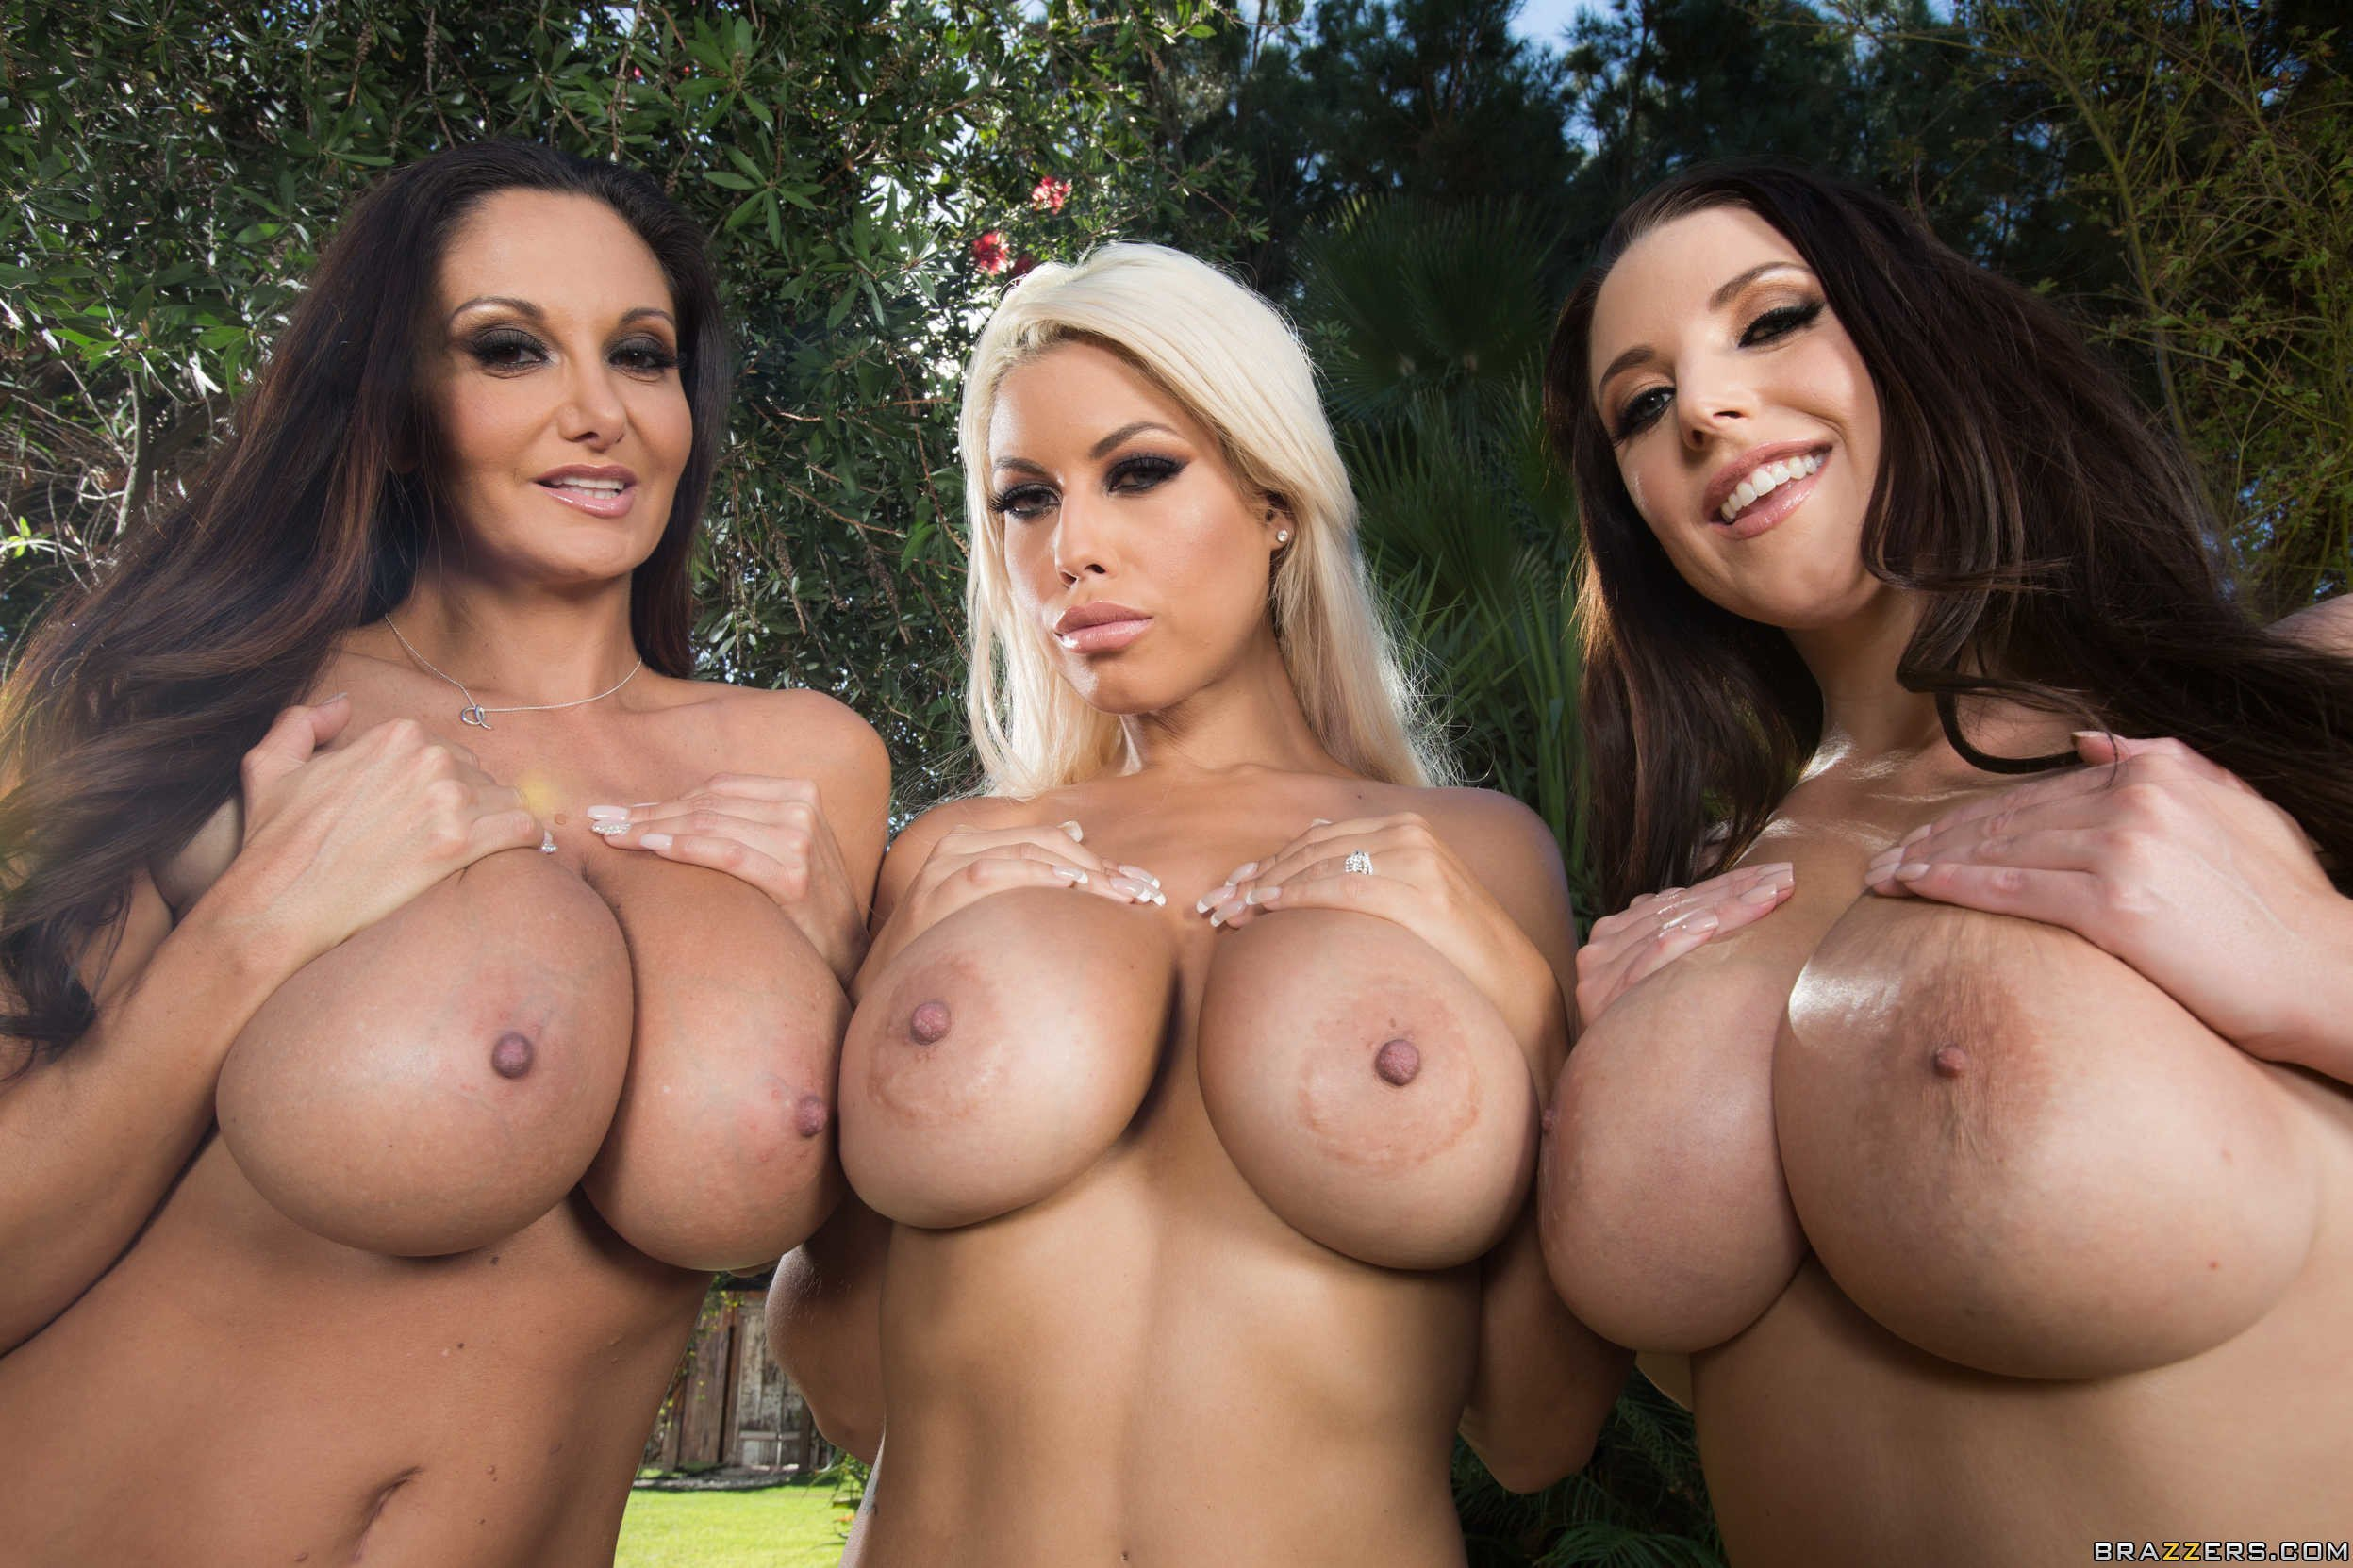 Group milf boobs